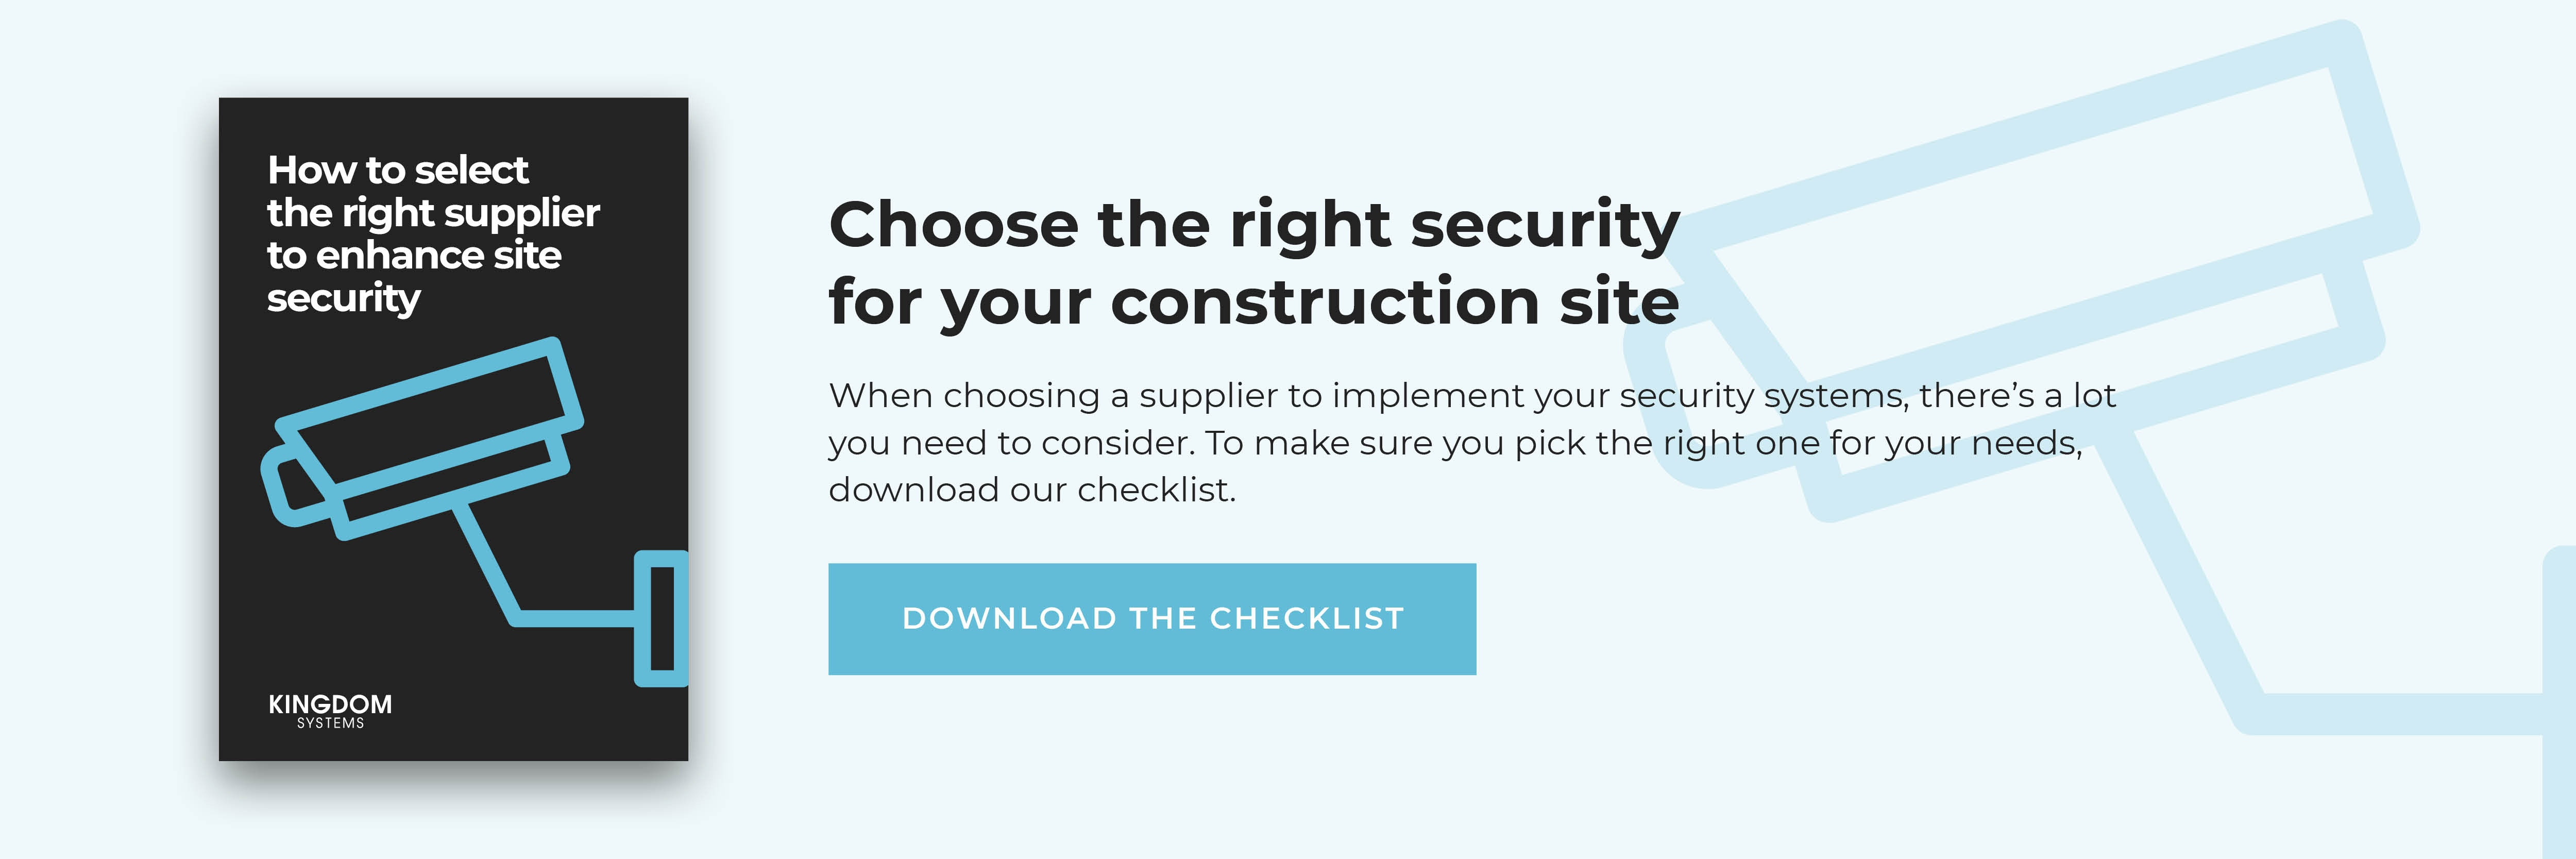 choosing the right security partner